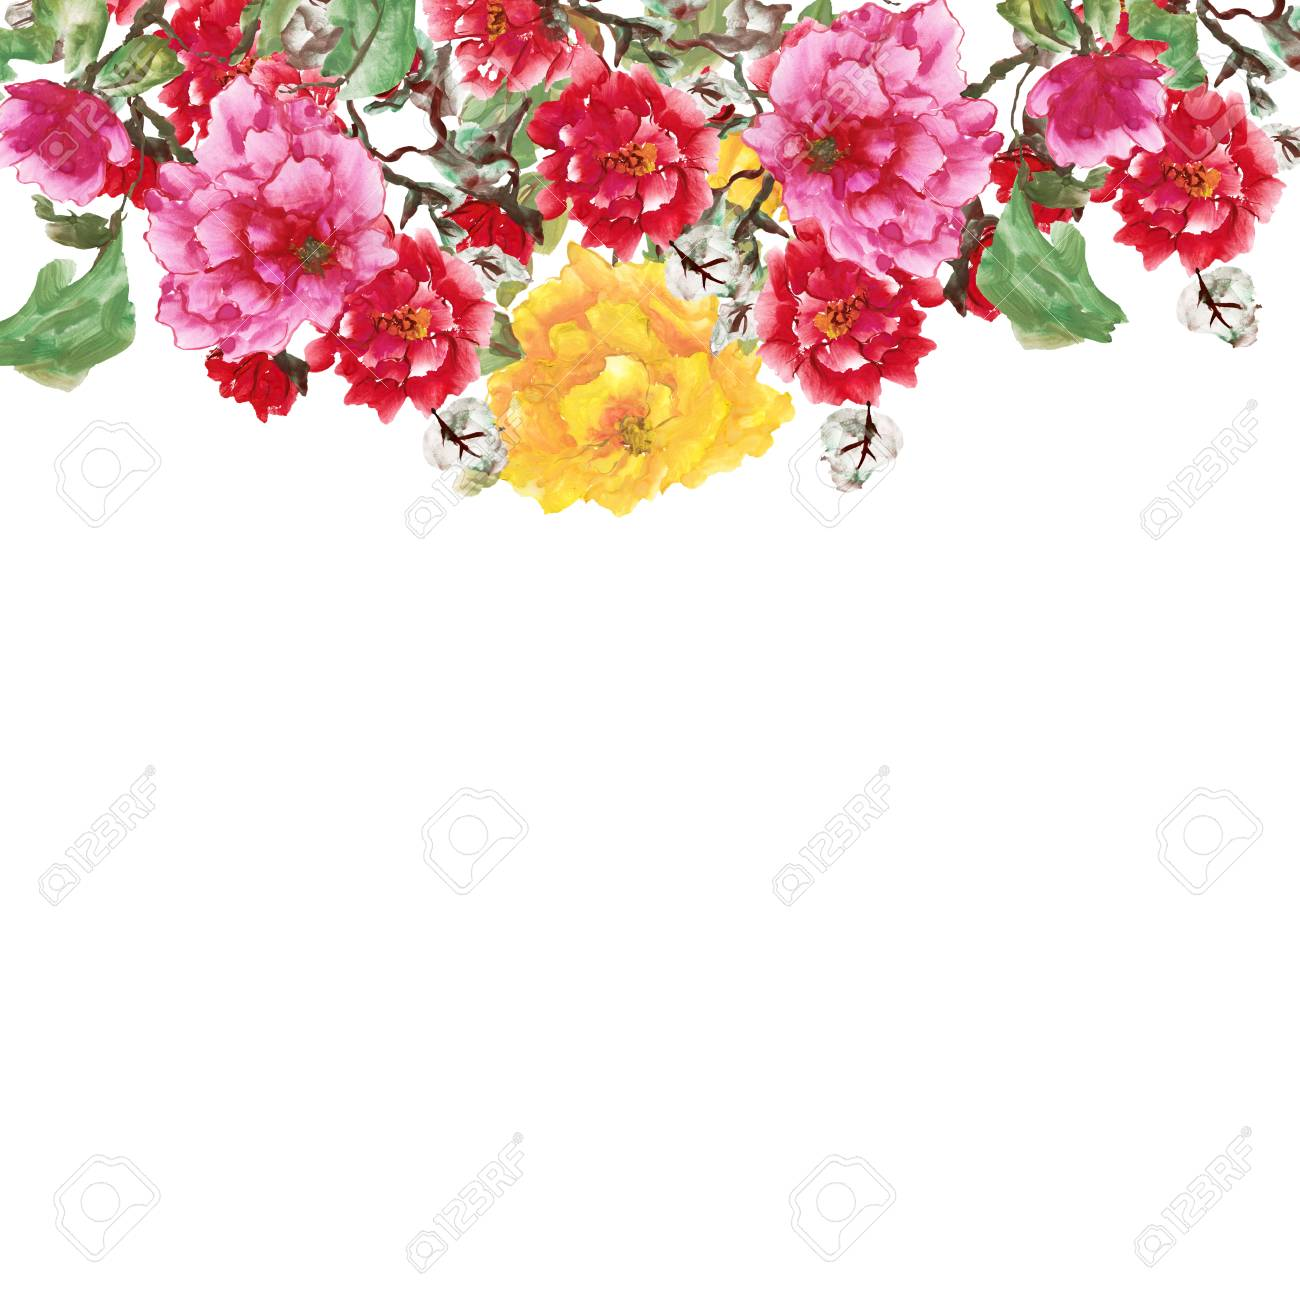 watercolor background with peony pink yellow and red flowers